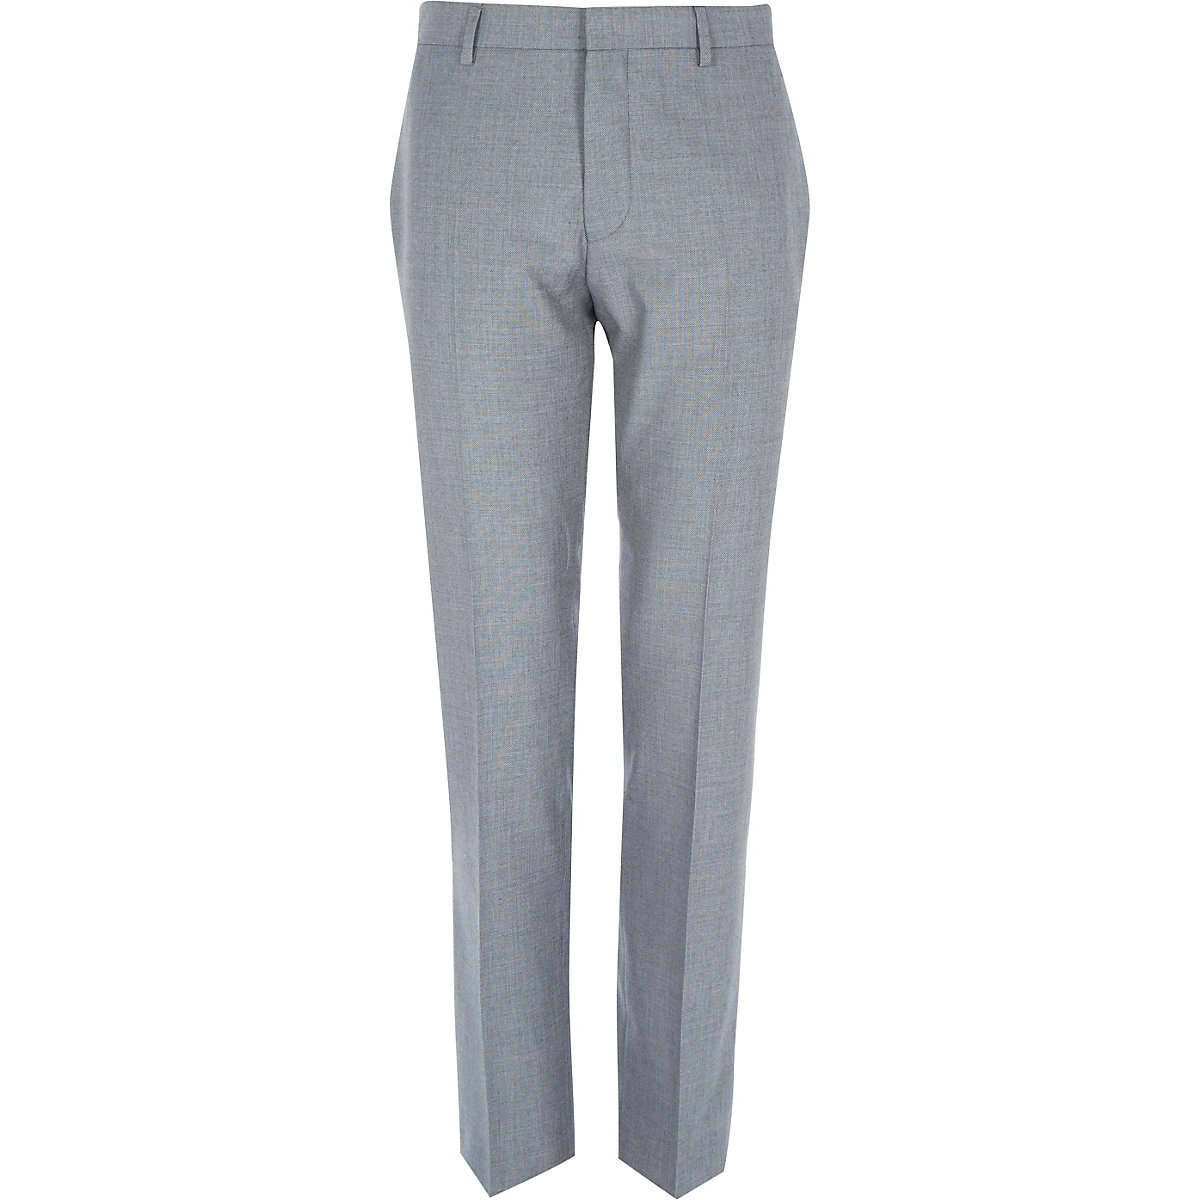 Grey tailored suit trousers